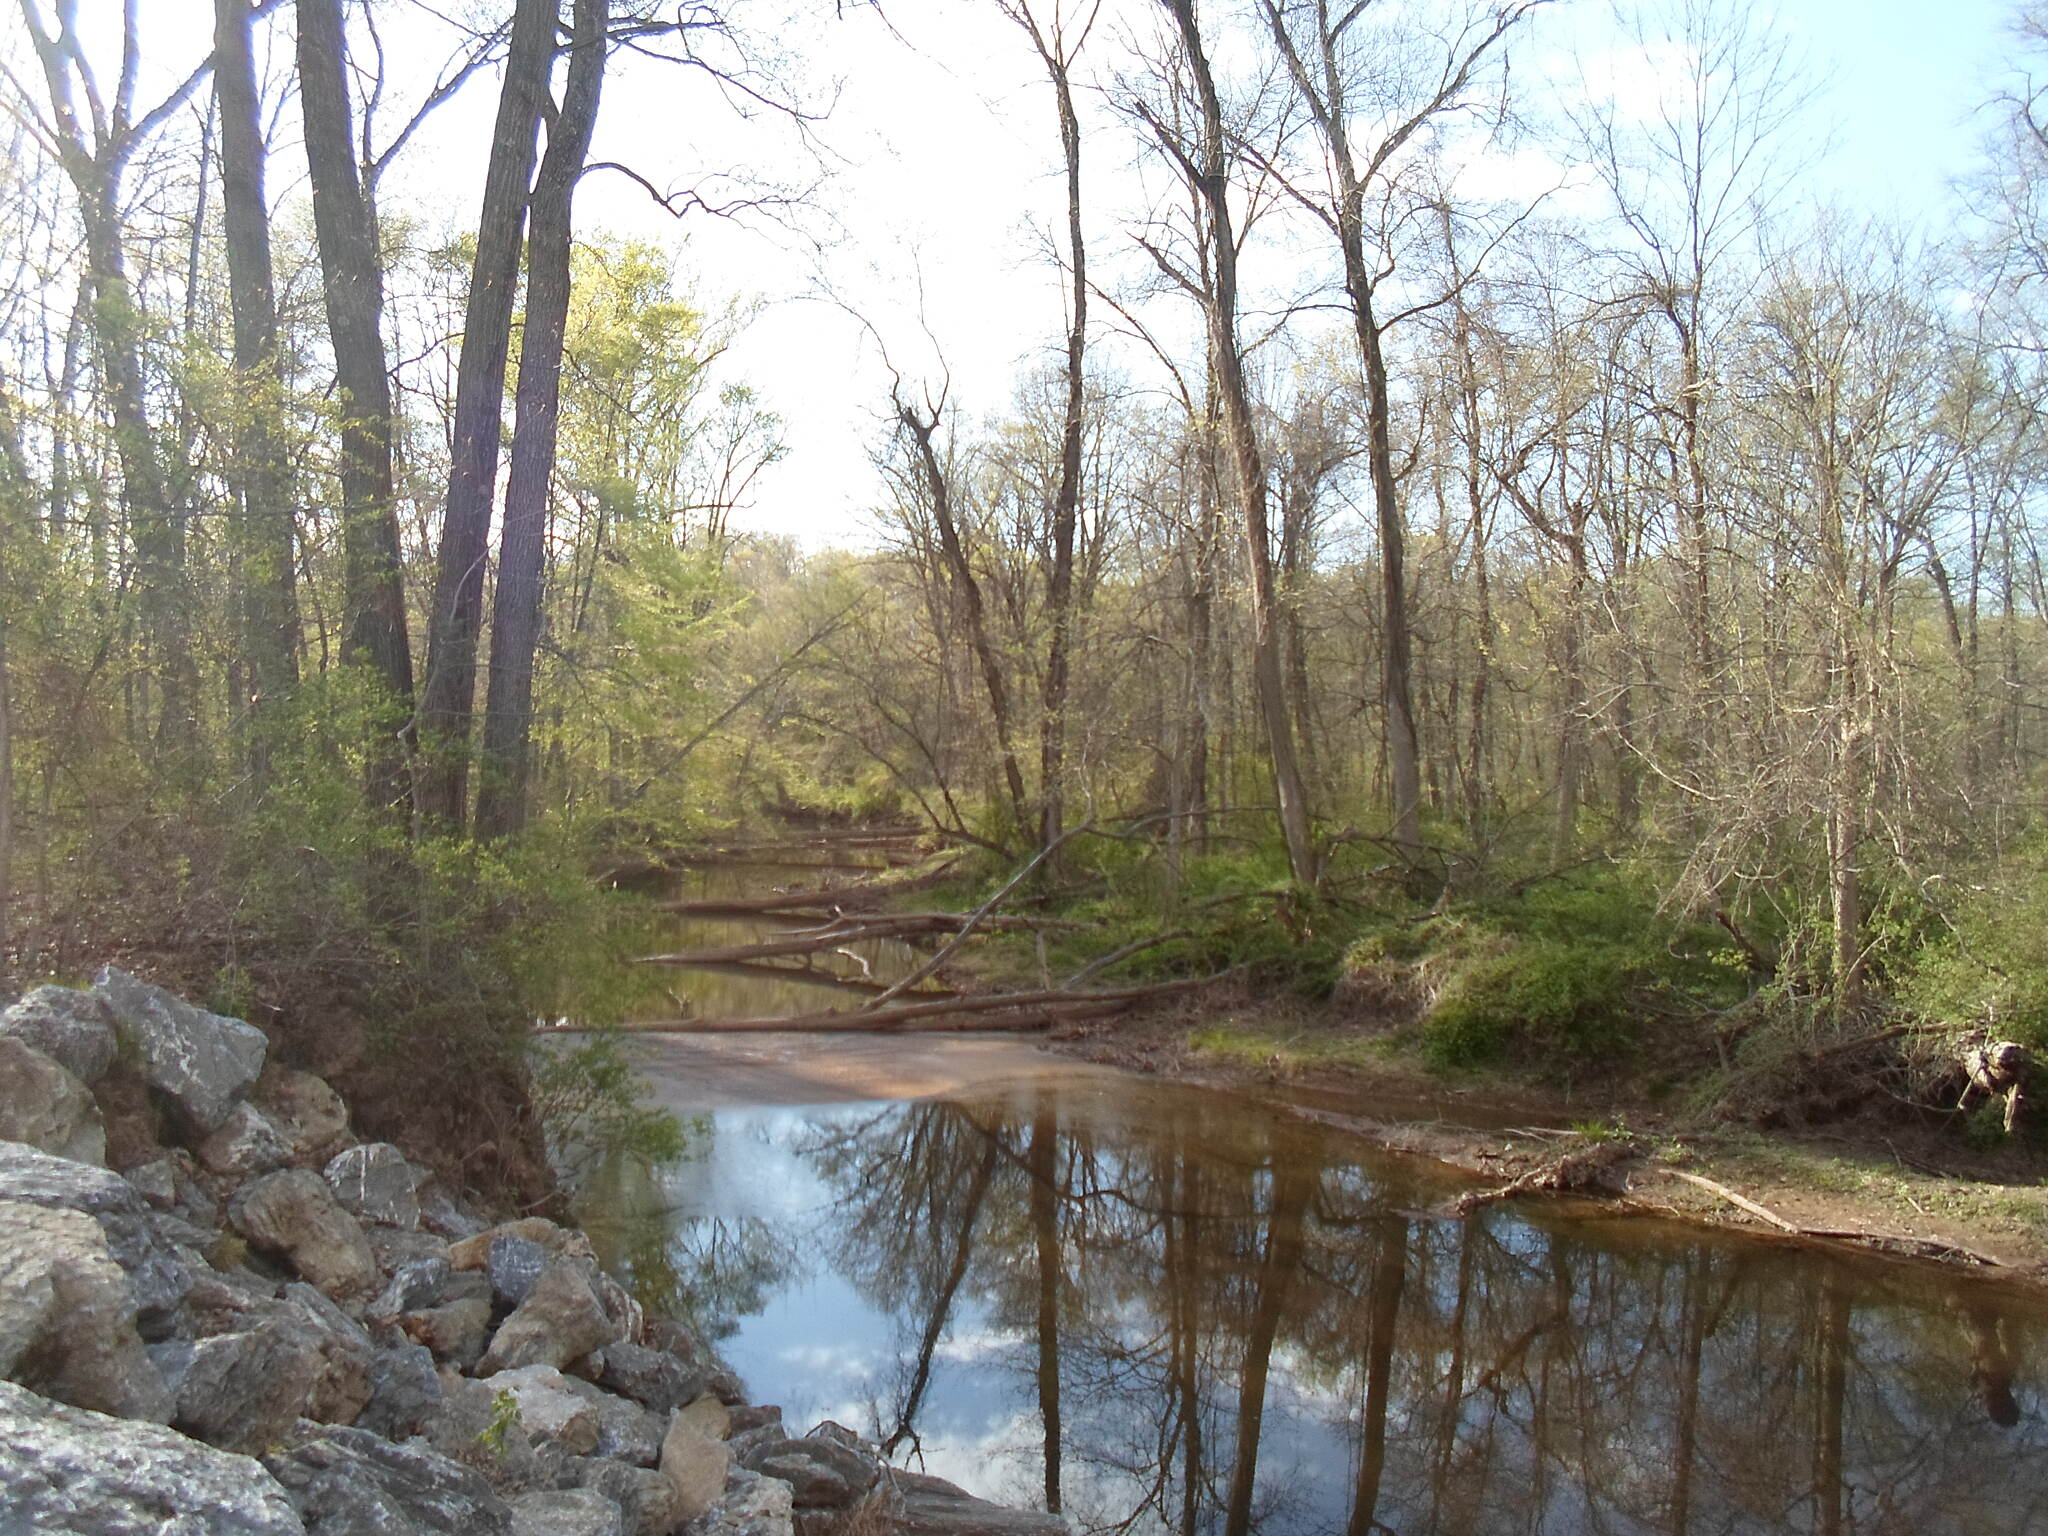 Conewago Recreation Trail Conewago Recreation Trail Beautiful reflections in the crystal clear waters of the Conewago Creek. Taken May 2015.